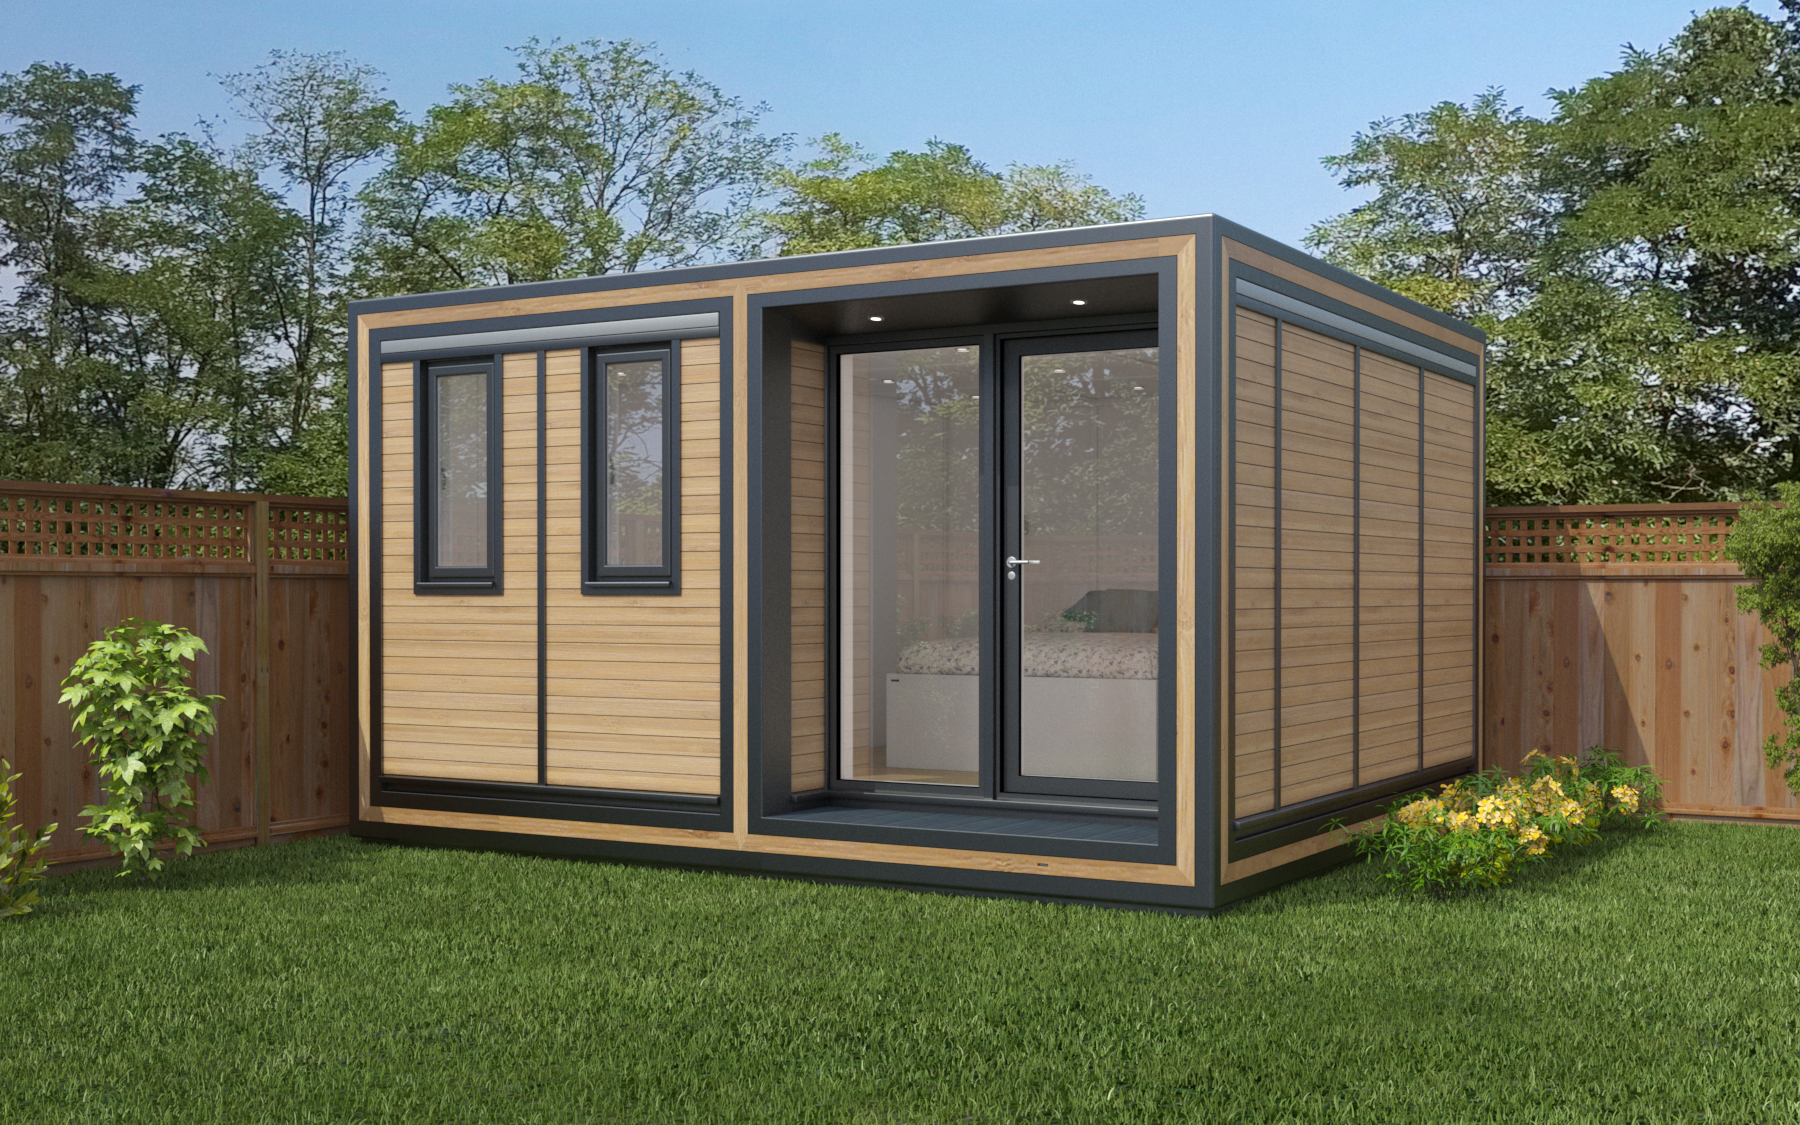 ZEDBOX 435  (3 x 3.5)  Internal Size: 4259 x 3791  External Size: 4279 x 4261  Bed Options: Single or Double  Kitchen Options: Micro Kitchen or Kitchen  Wet Room Options: Yes  Portico: Yes  Price:  £28,000    Optional Extras    Request Zedbox Catalogue